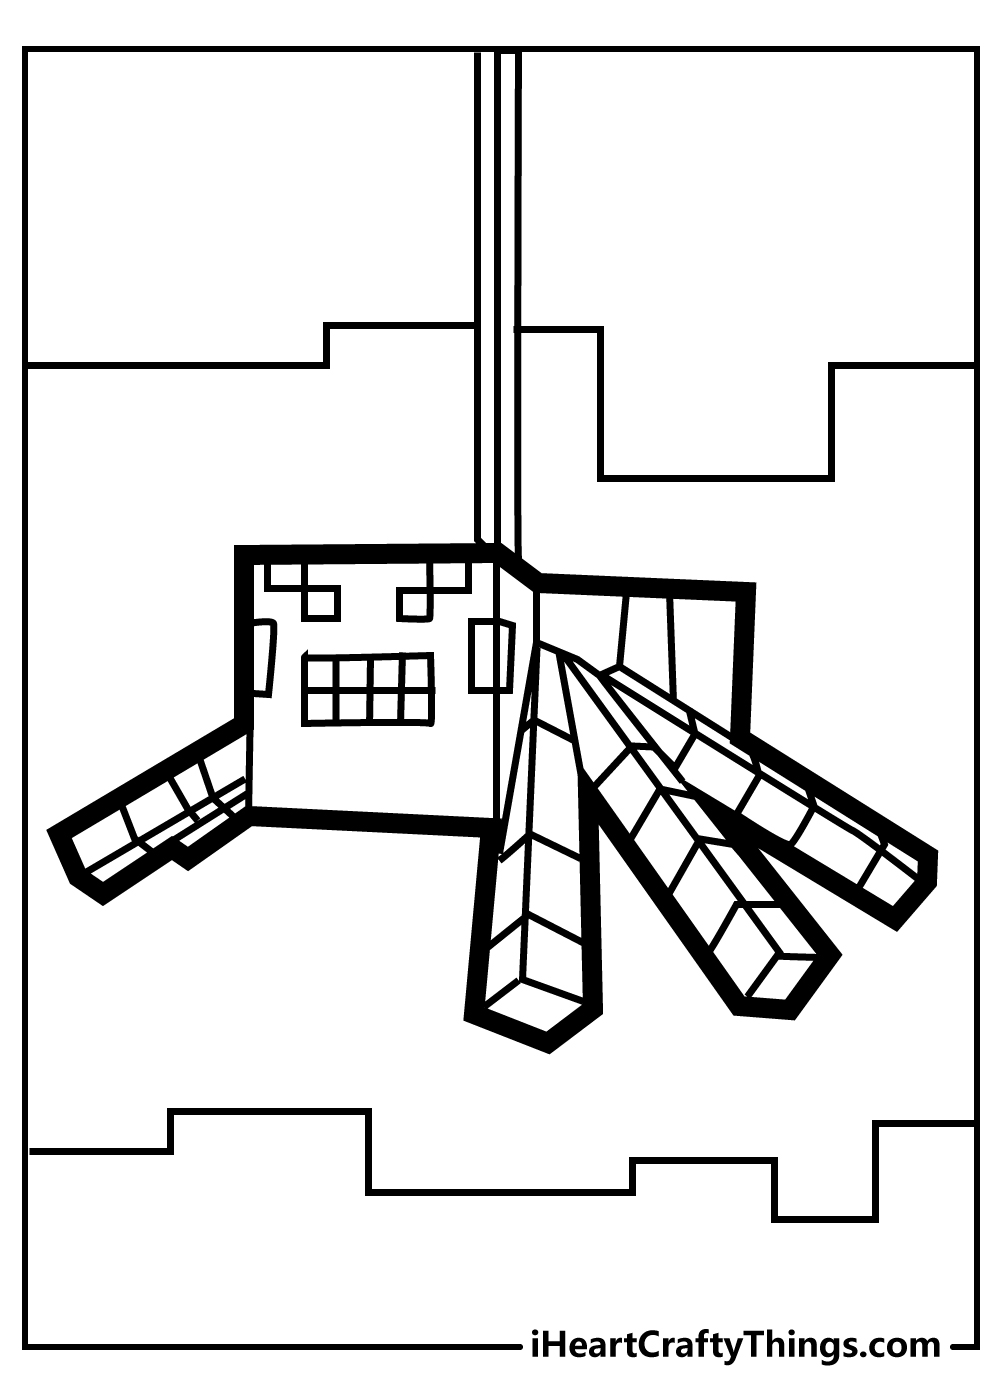 minecraft characters coloring pages free download